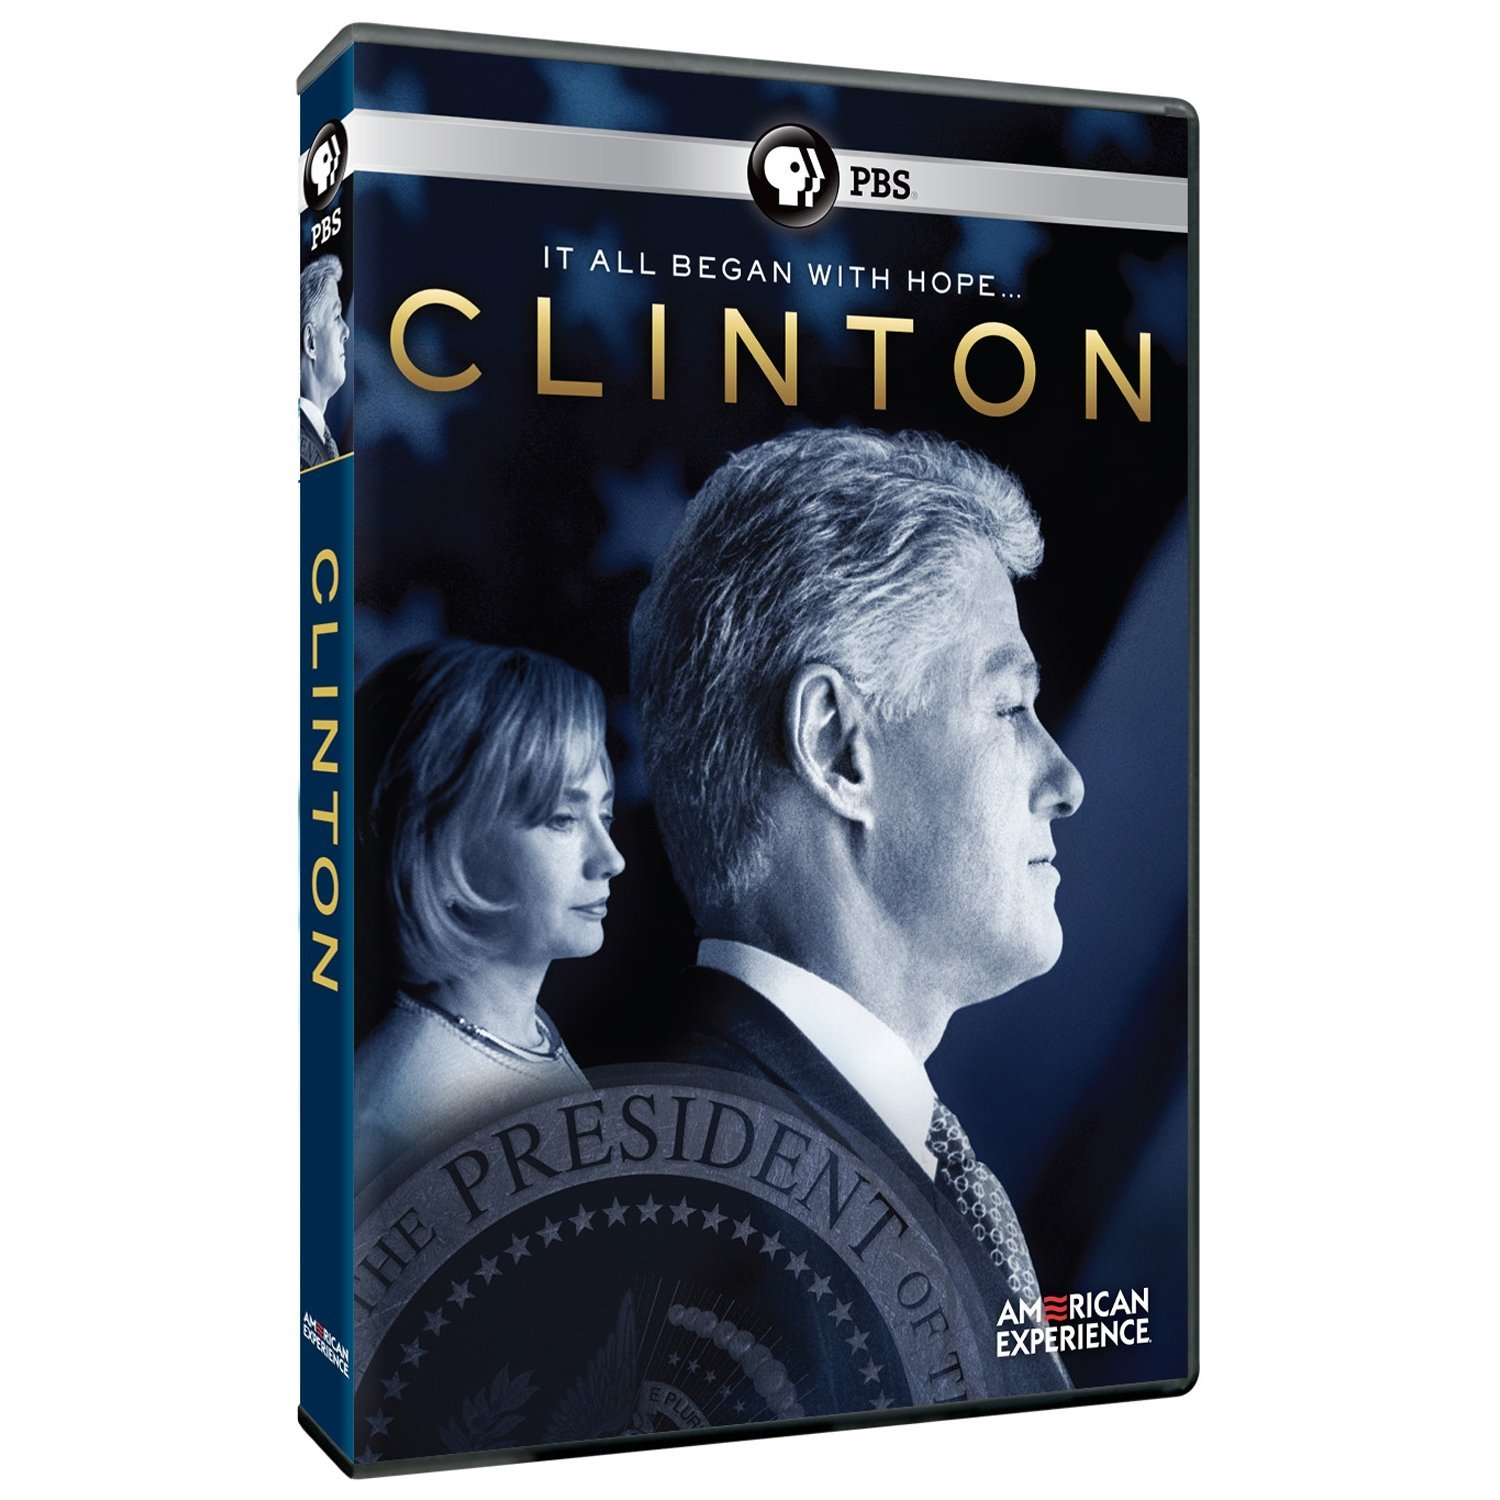 Clinton American Experience DVD cover